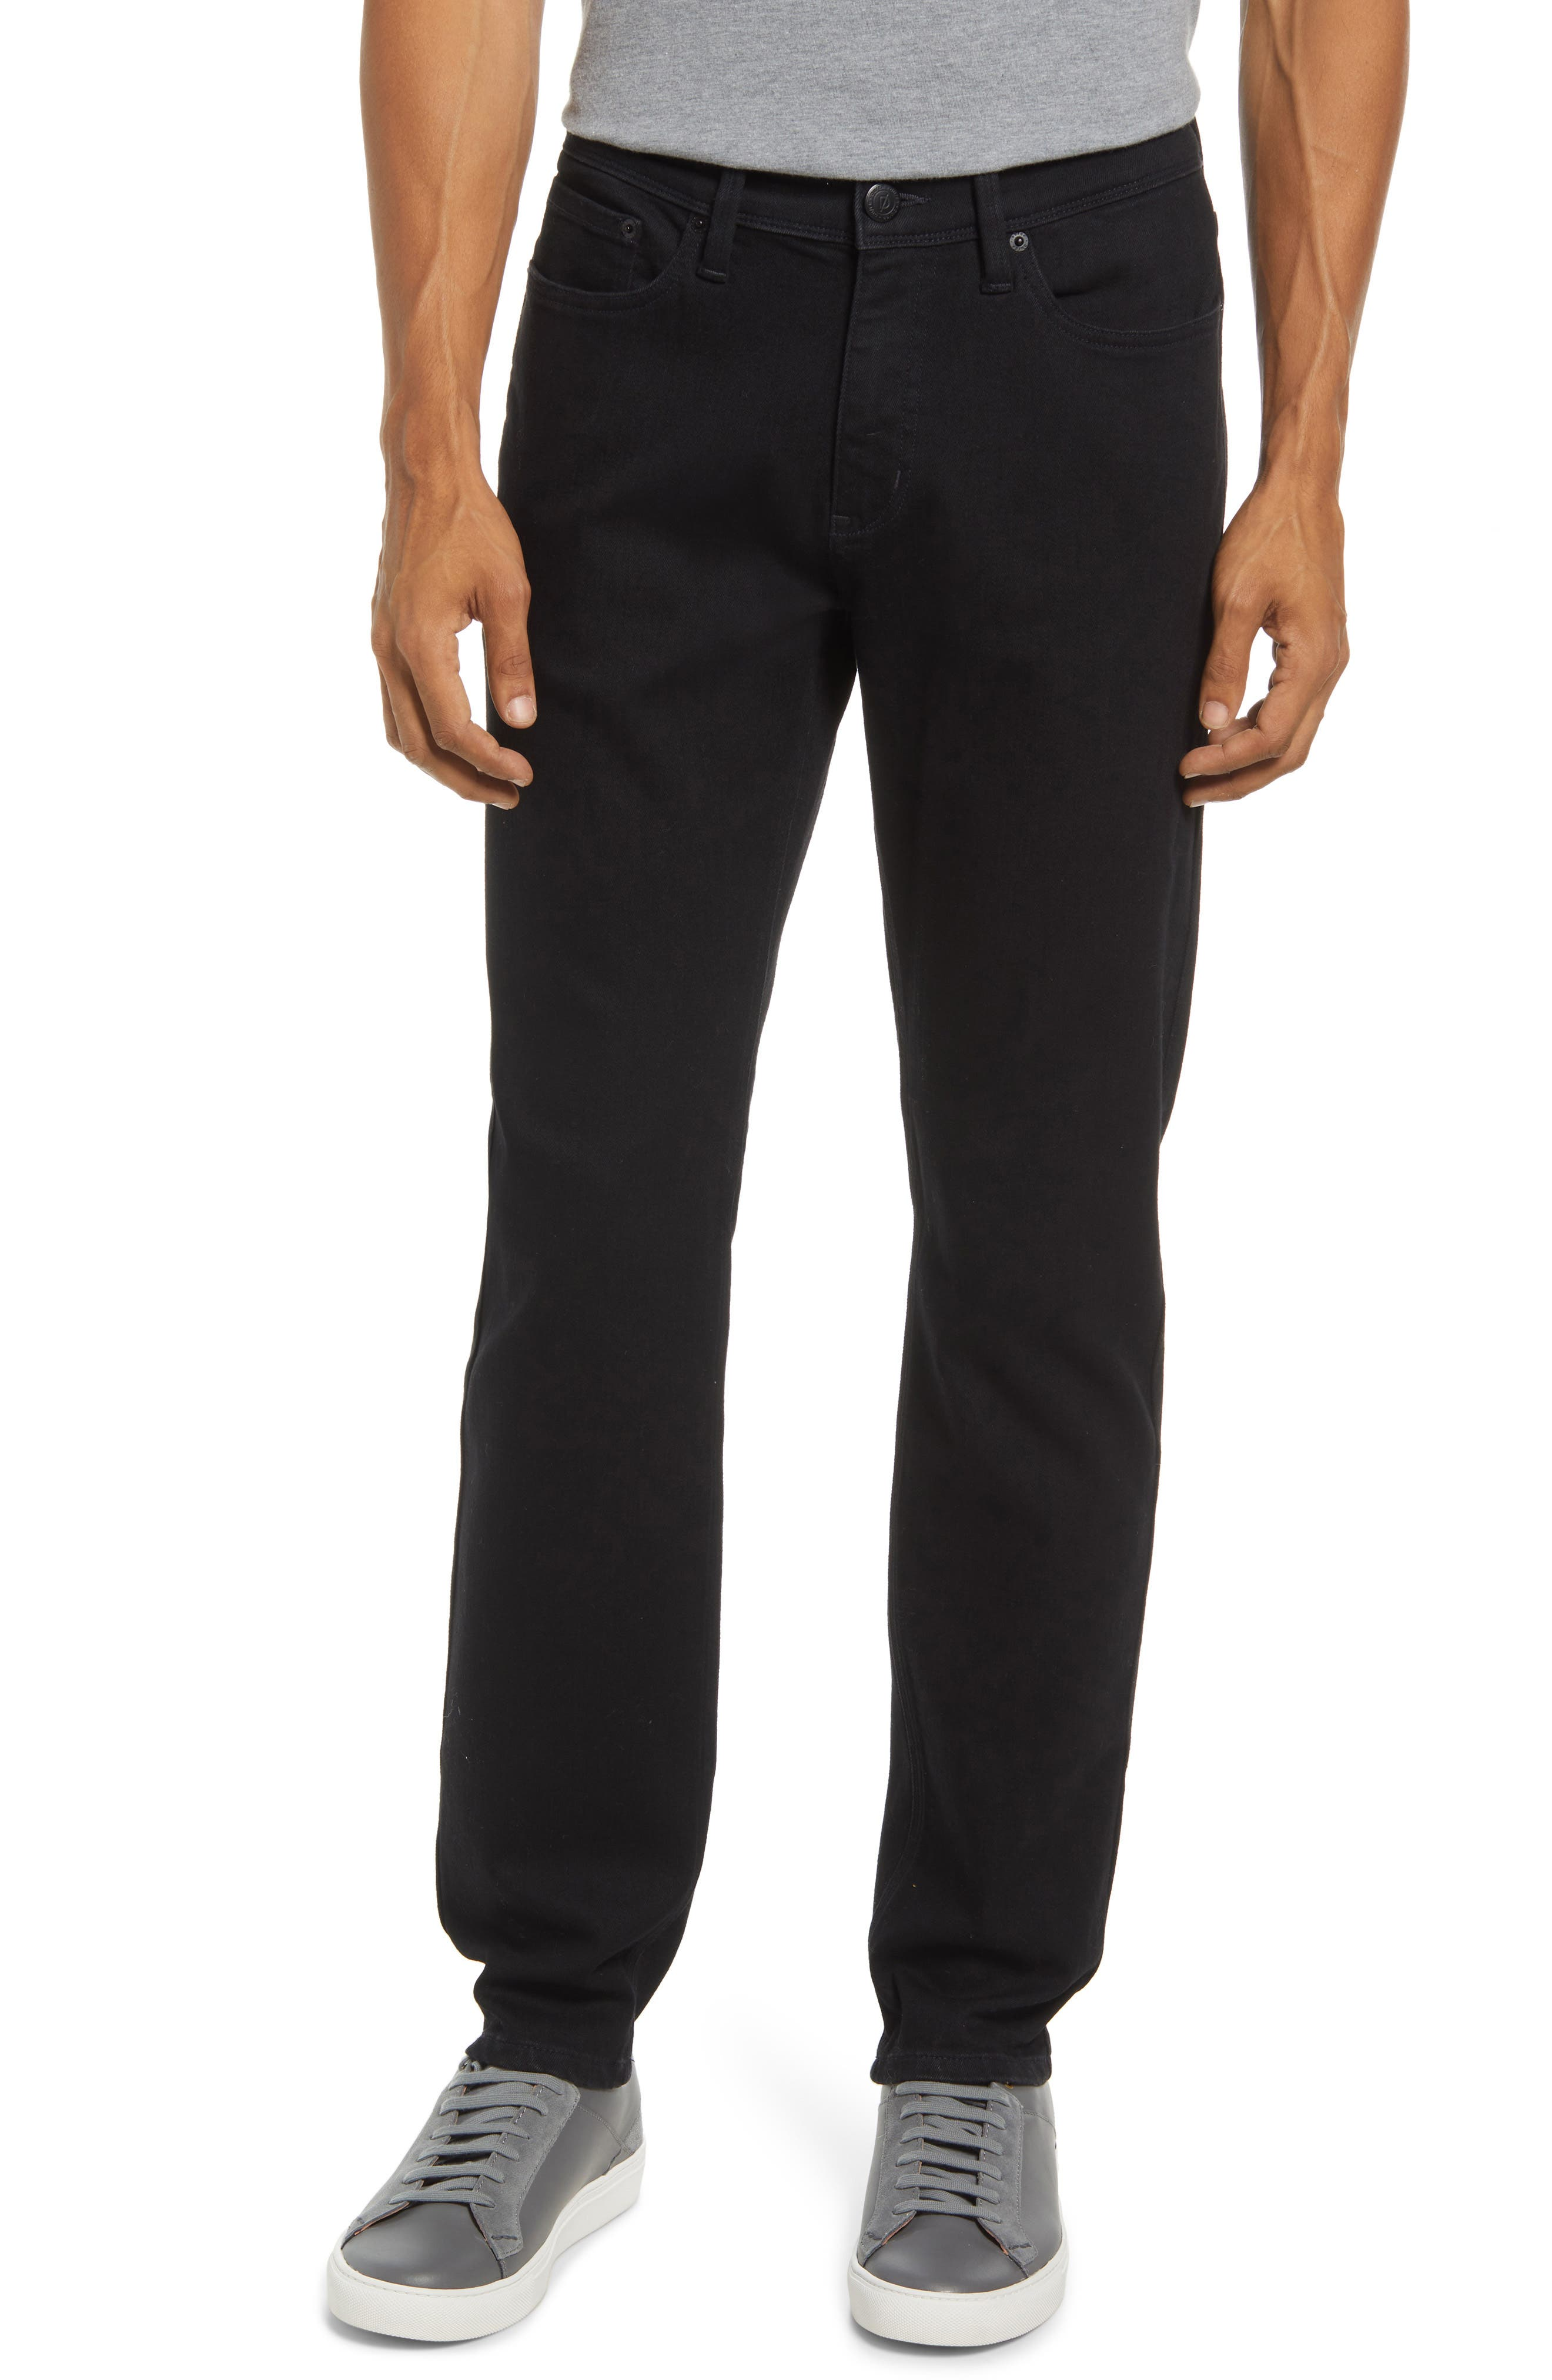 Stay Dry Slim Fit Performance Jeans